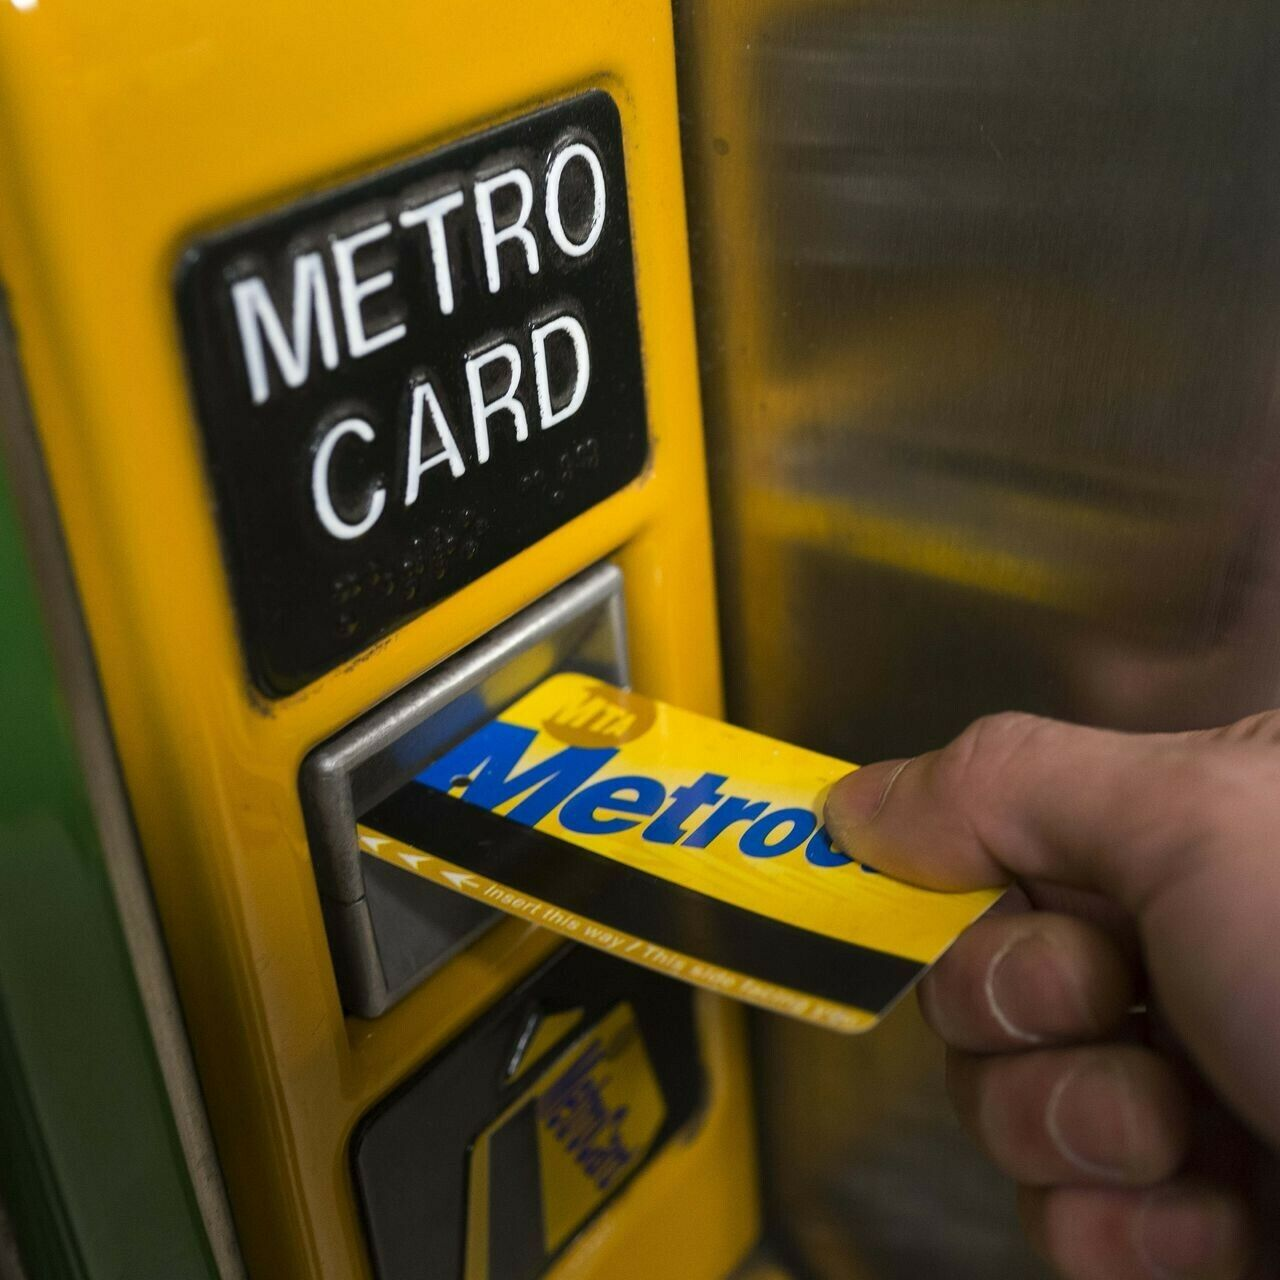 Metrocard 30-Day Unlimited  - $75.00